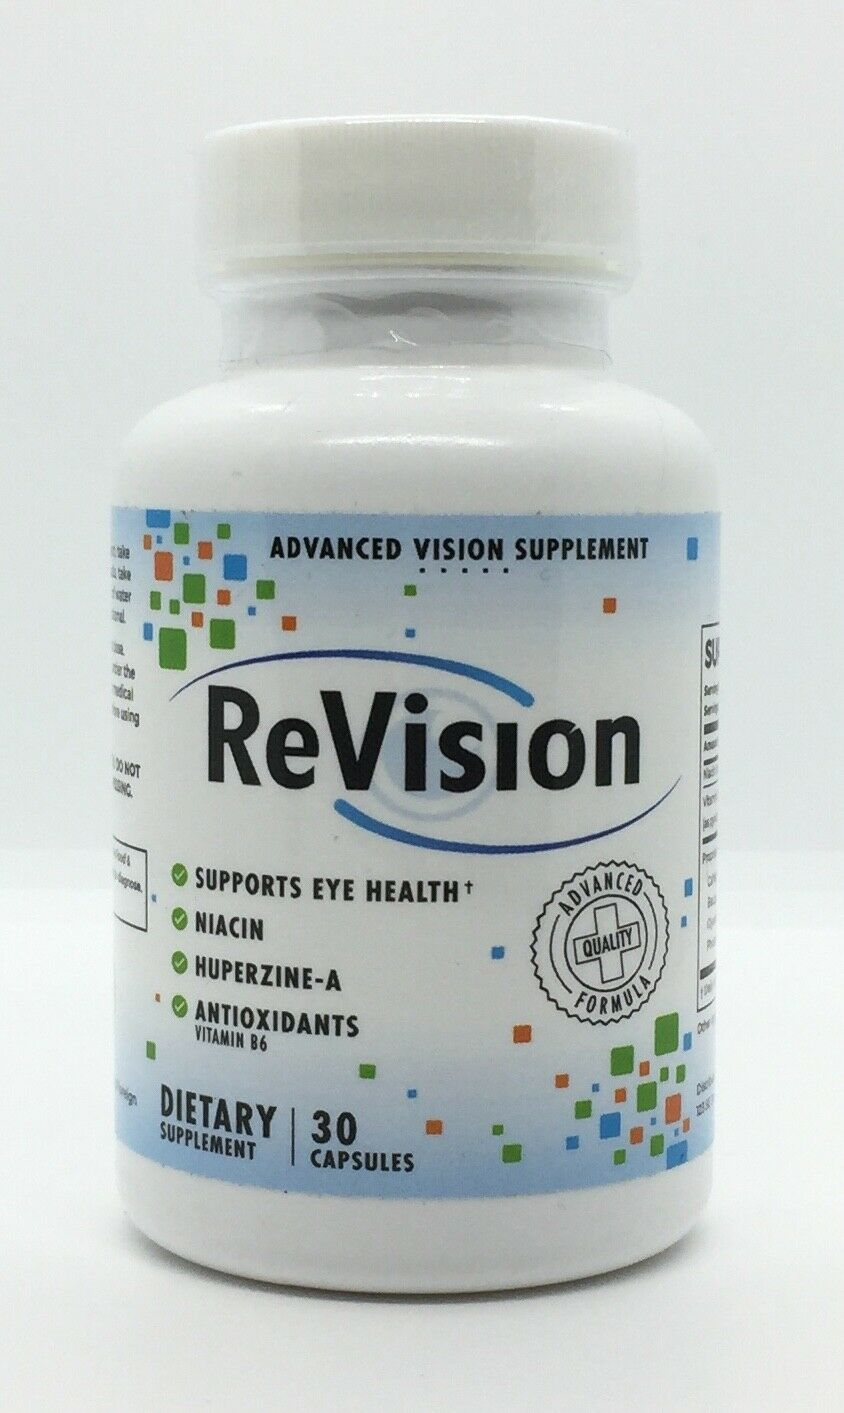 ReVision Advanced Vision Supplement Supports Eye Health NEW